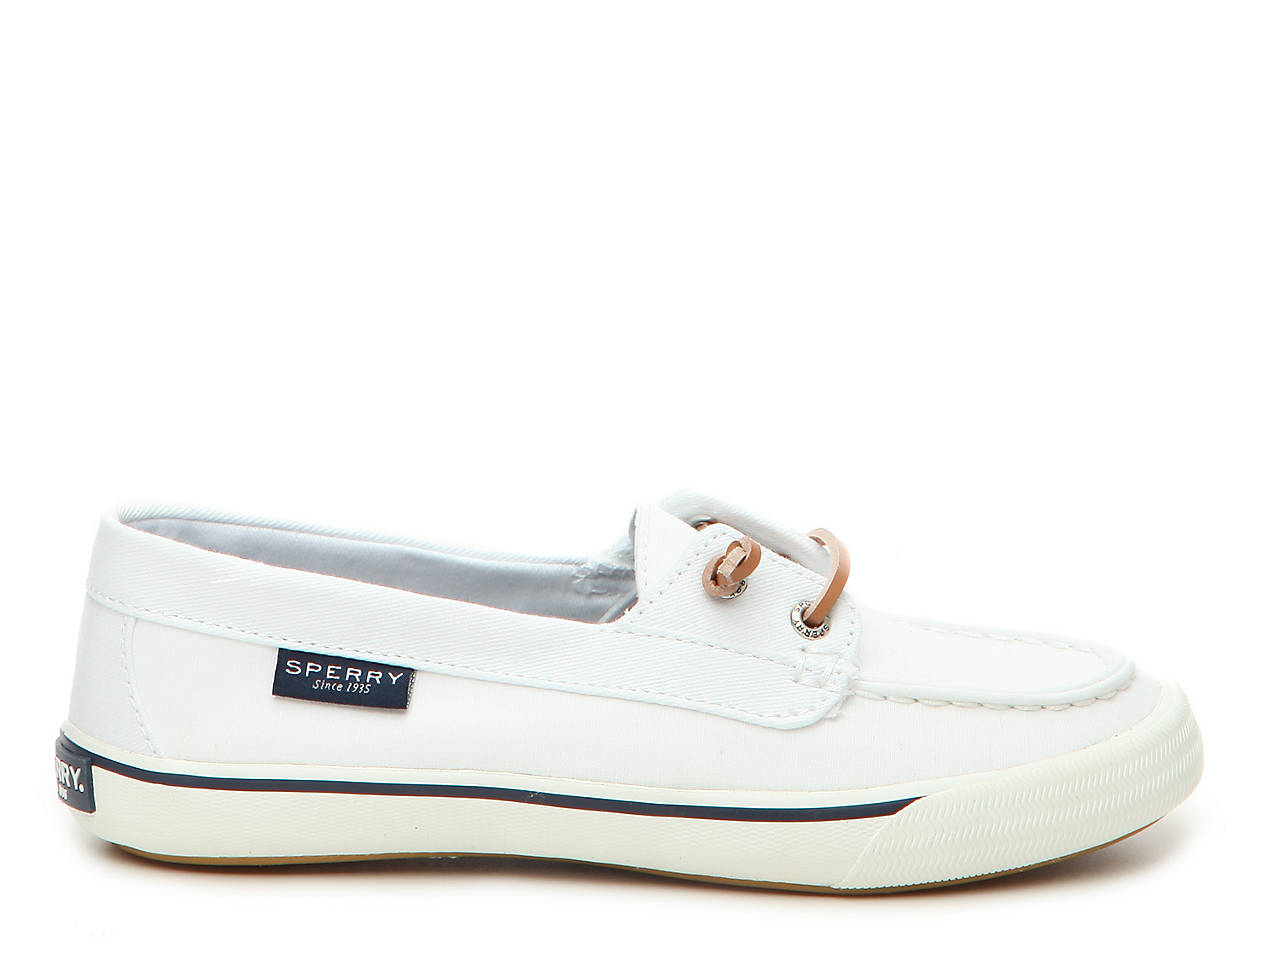 4888667027a1 Sperry Top-Sider Lounge Away Boat Shoe Women s Shoes